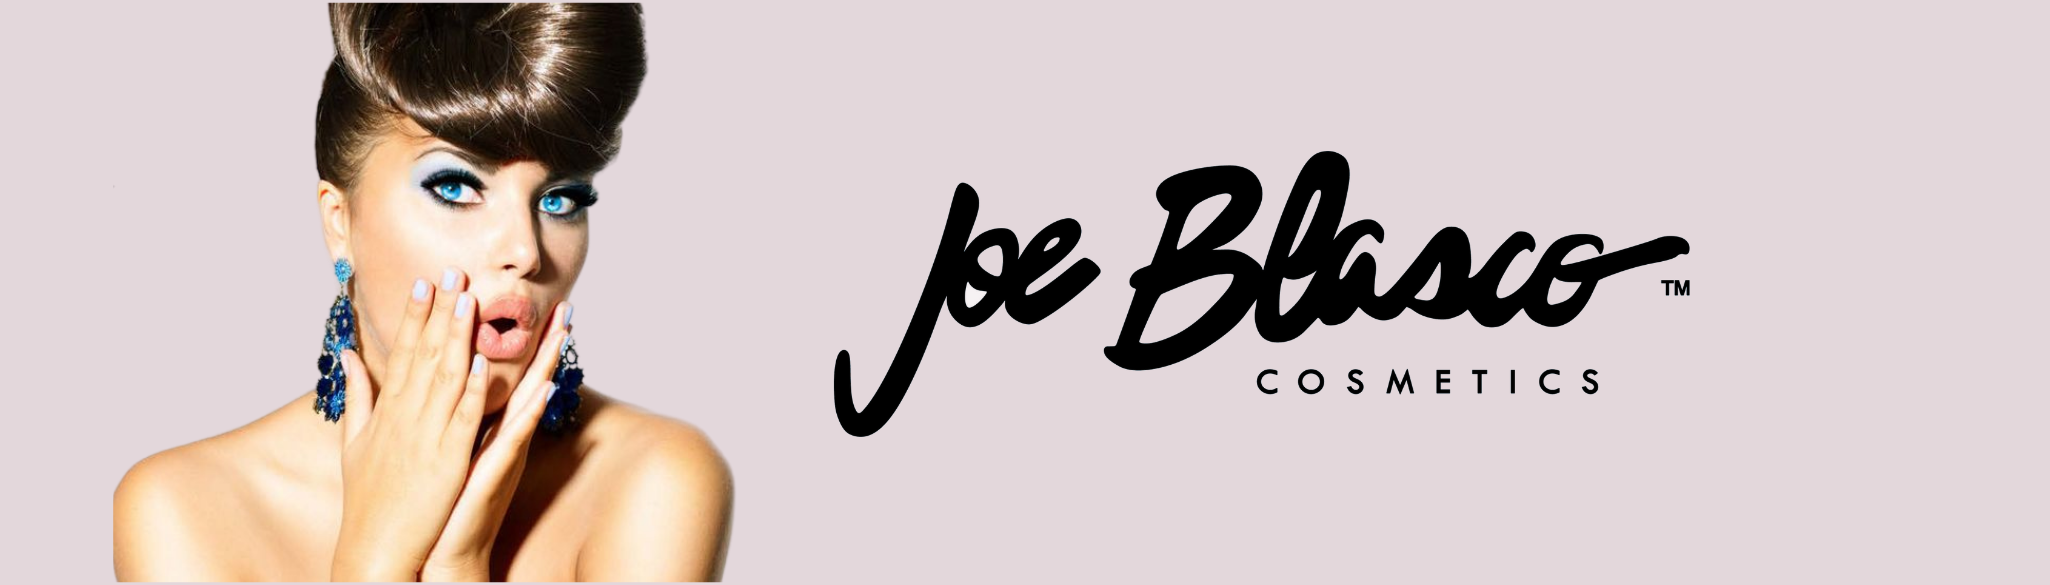 JOE BLASCO COSMETICS